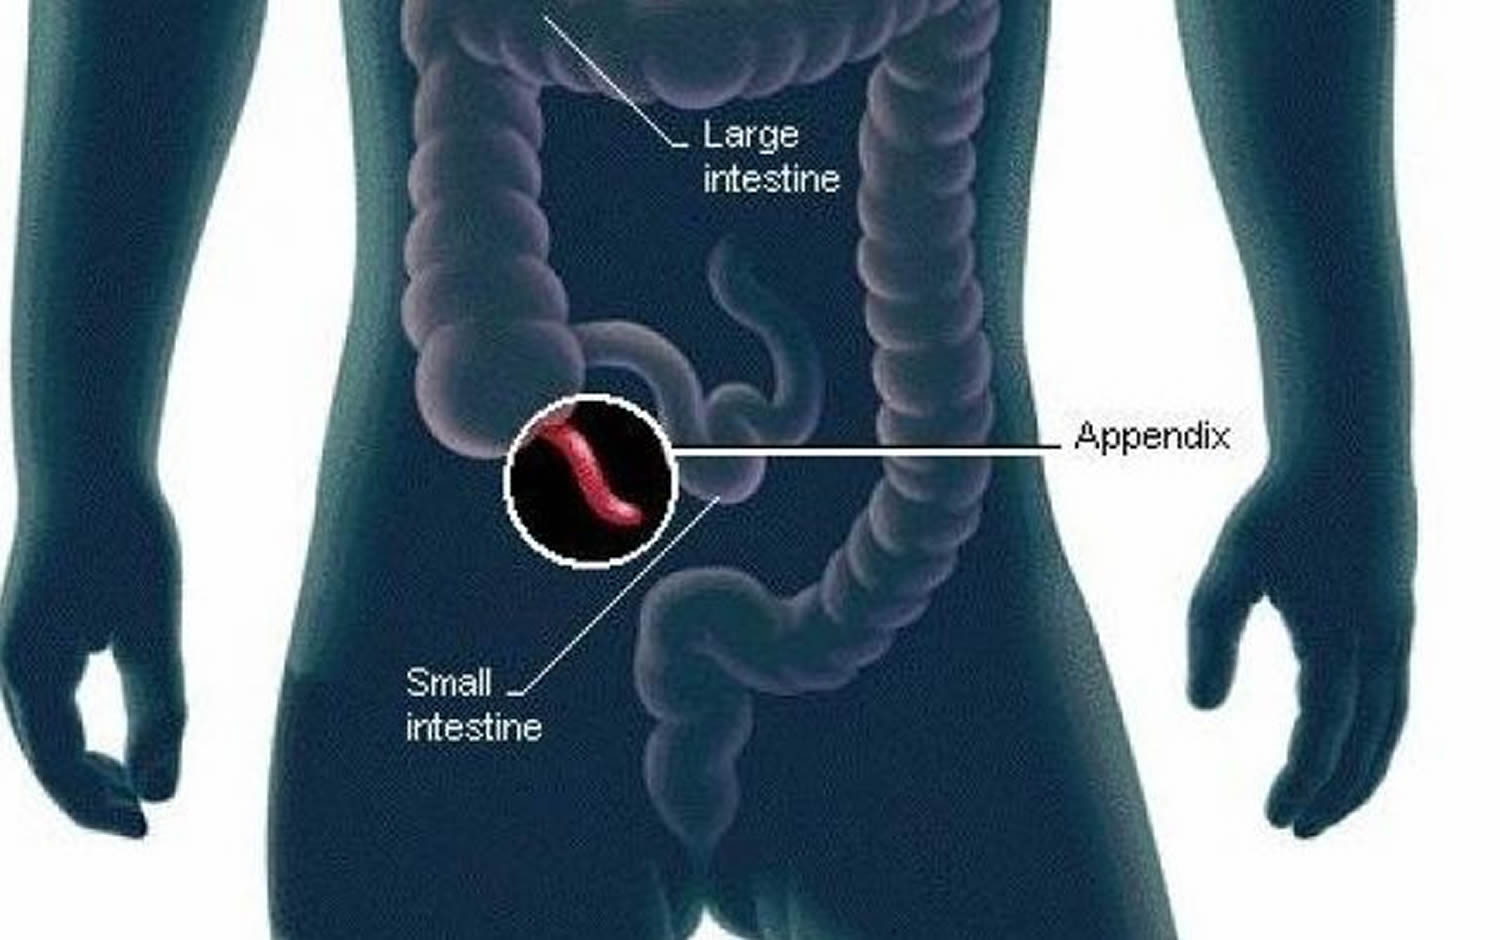 Human Appendix - Anatomy, Location and Function of Appendix